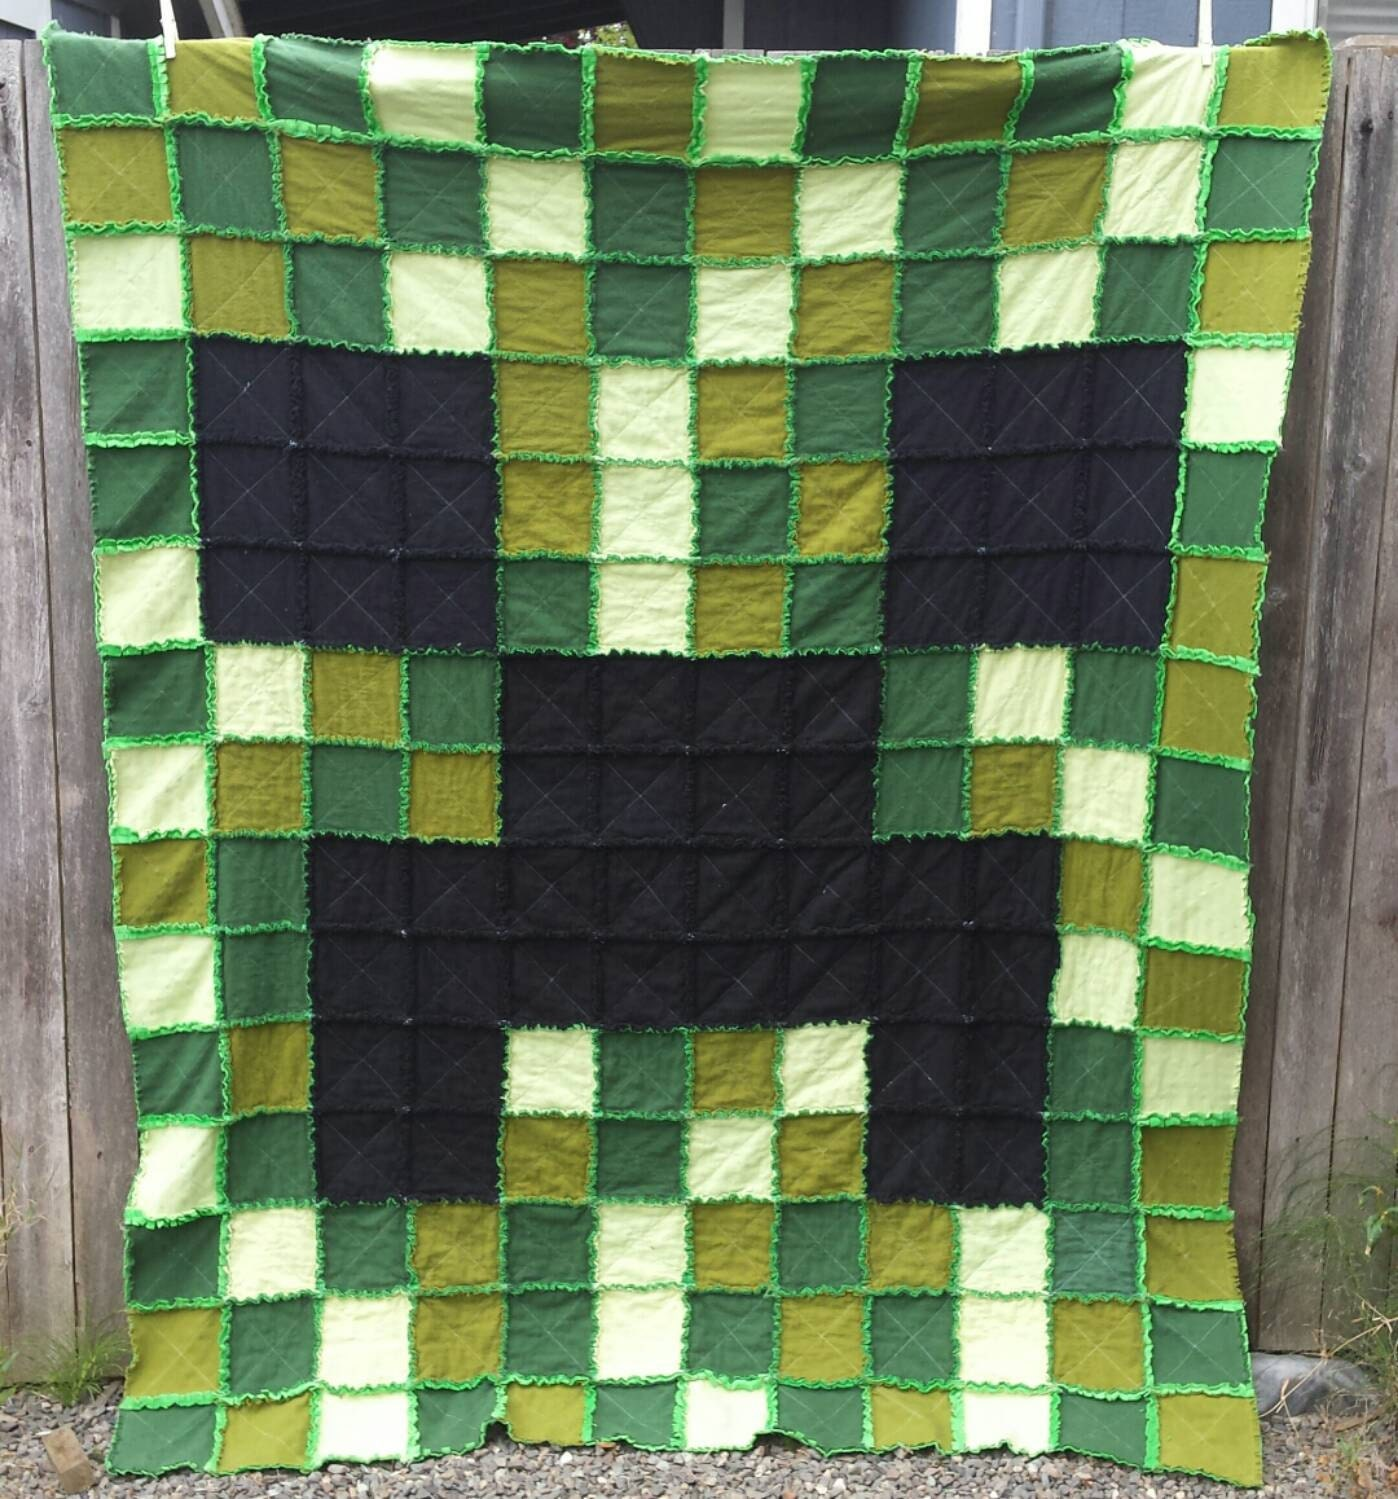 Rag Quilt Patterns For Twin Bed : TWIN SIZE Minecraft Creeper Rag Quilt in greens and black